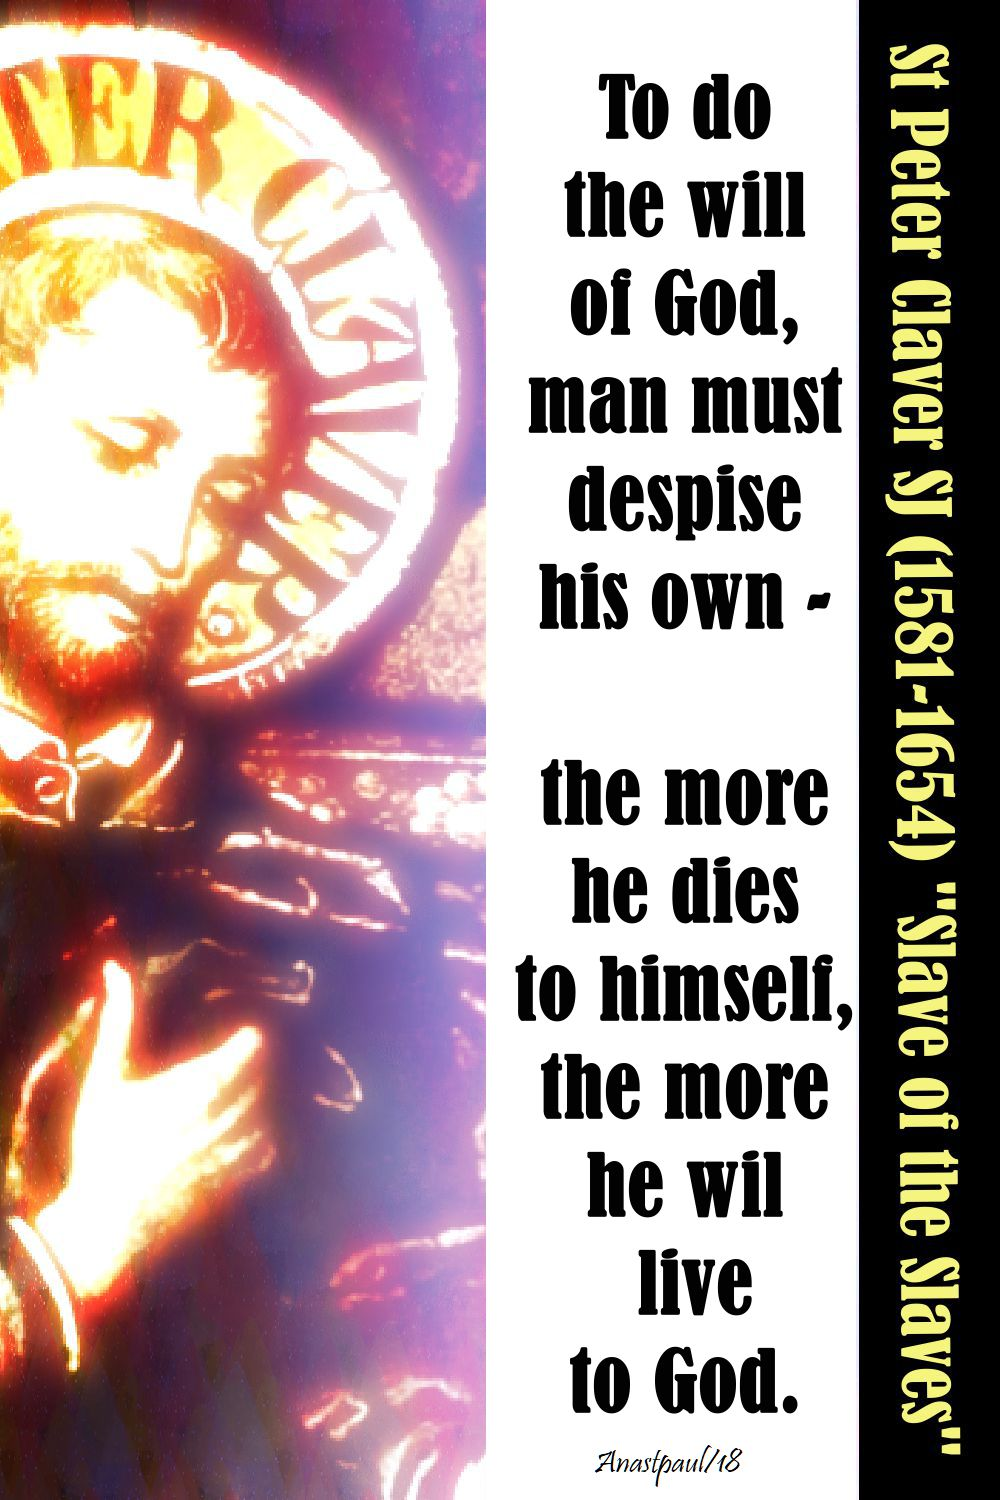 to do the will of god - st peter claver - 5 nov 2018 all jesuit saints